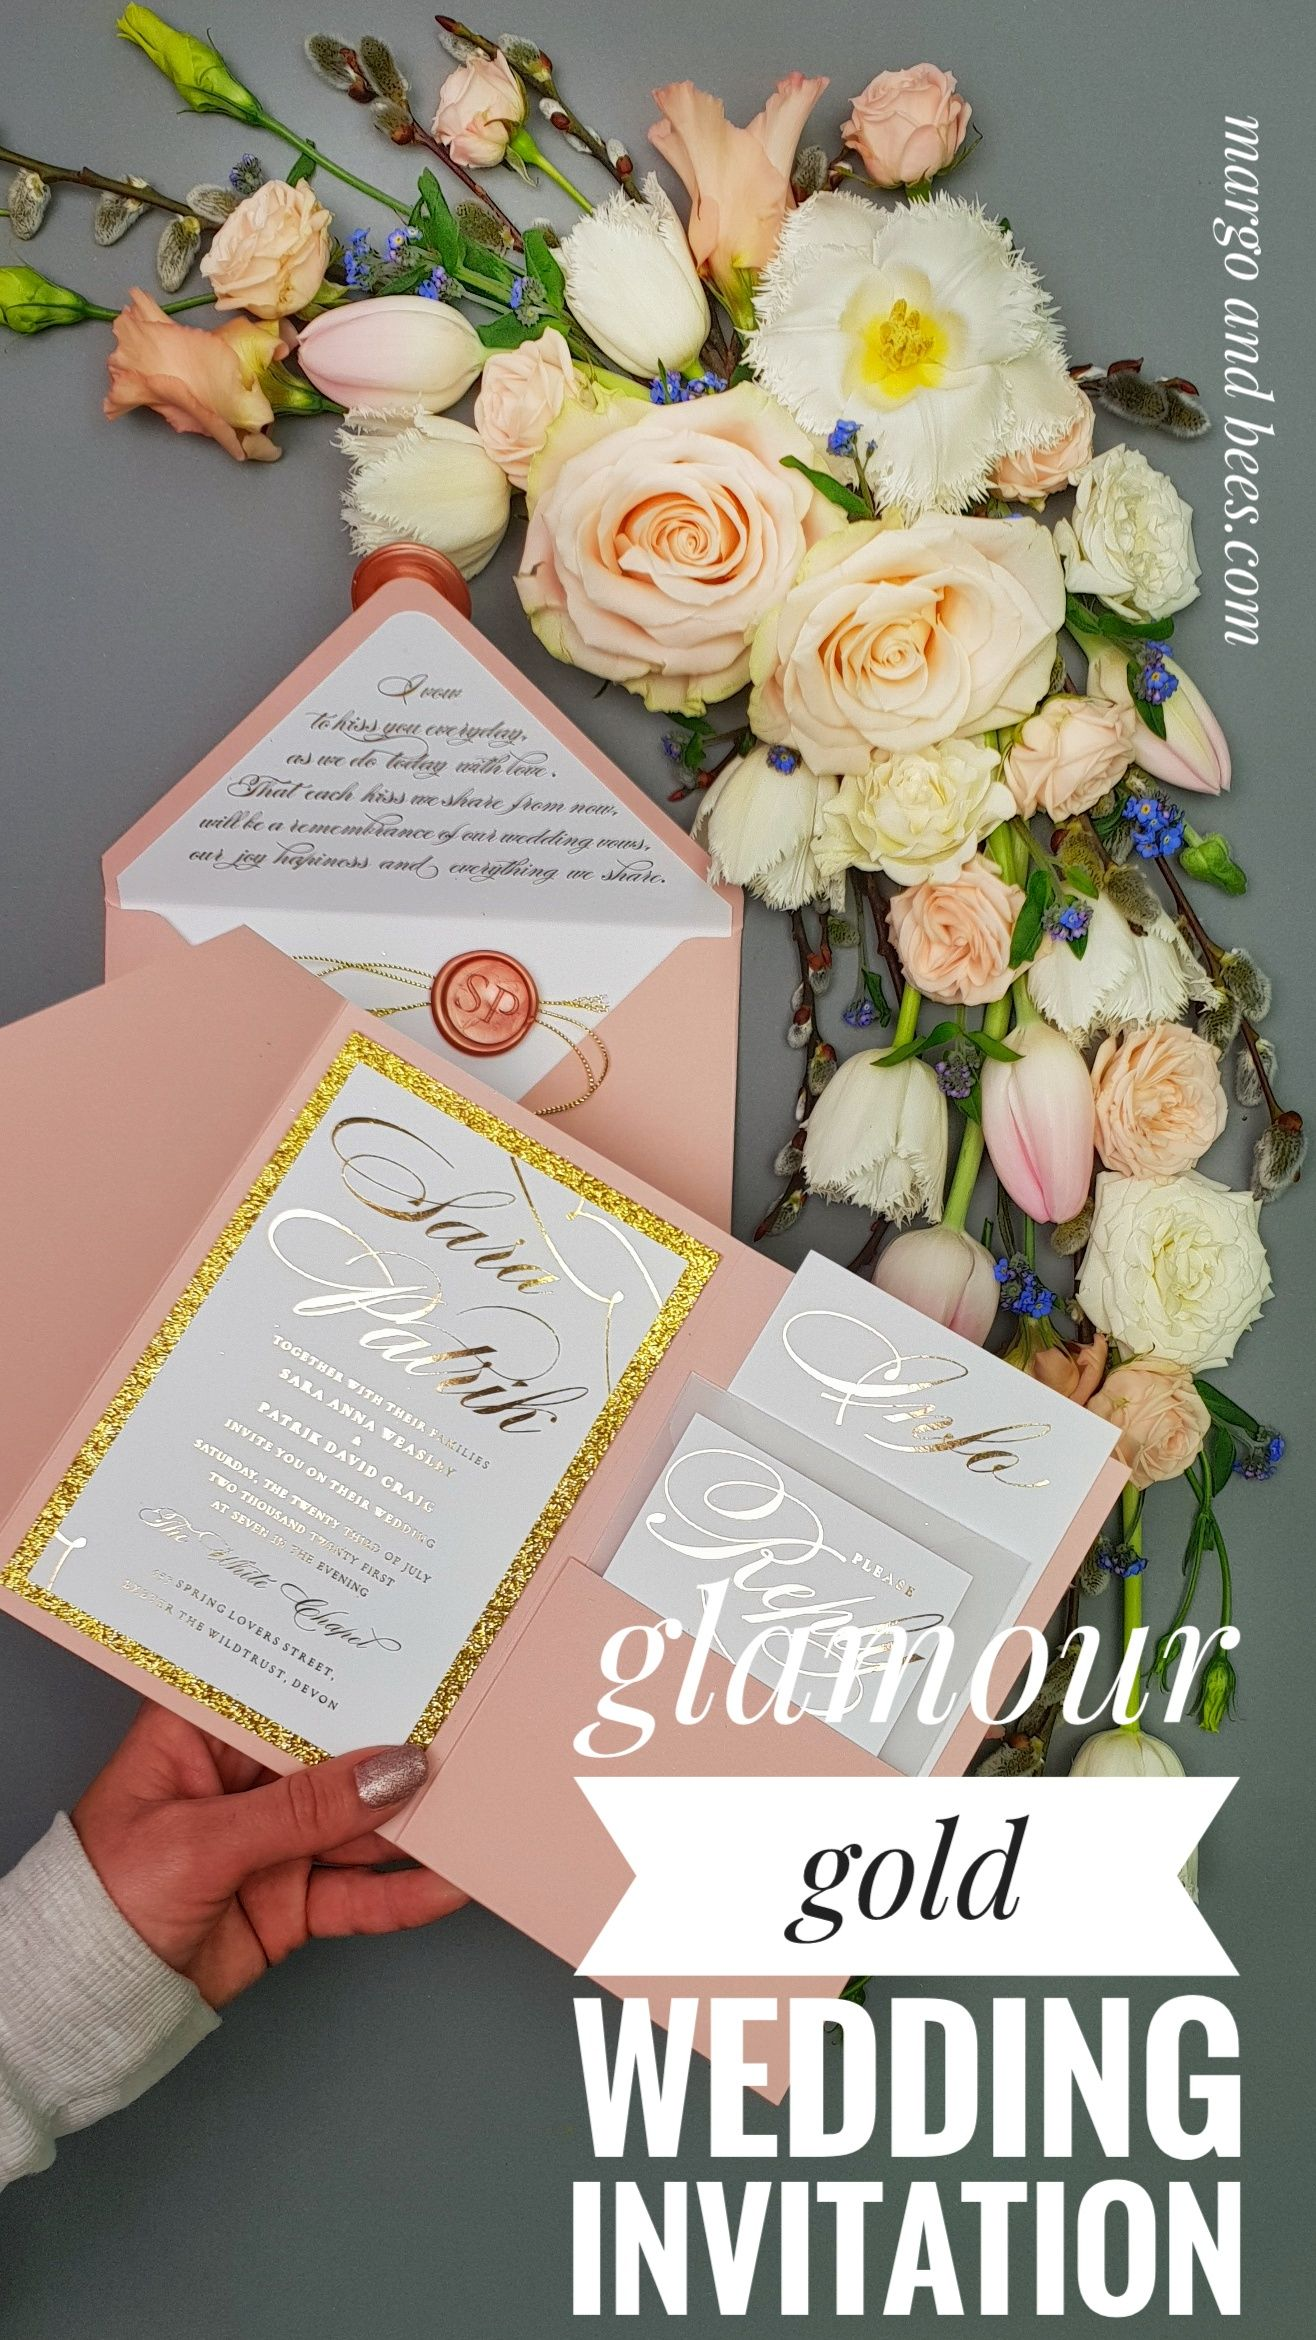 glamour wedding invitations, pink glitter wedding invites, custom wax seal wedding stationery, vellum envelopes and blush pink envelopes with silver liner perfect for spring outdoor weding